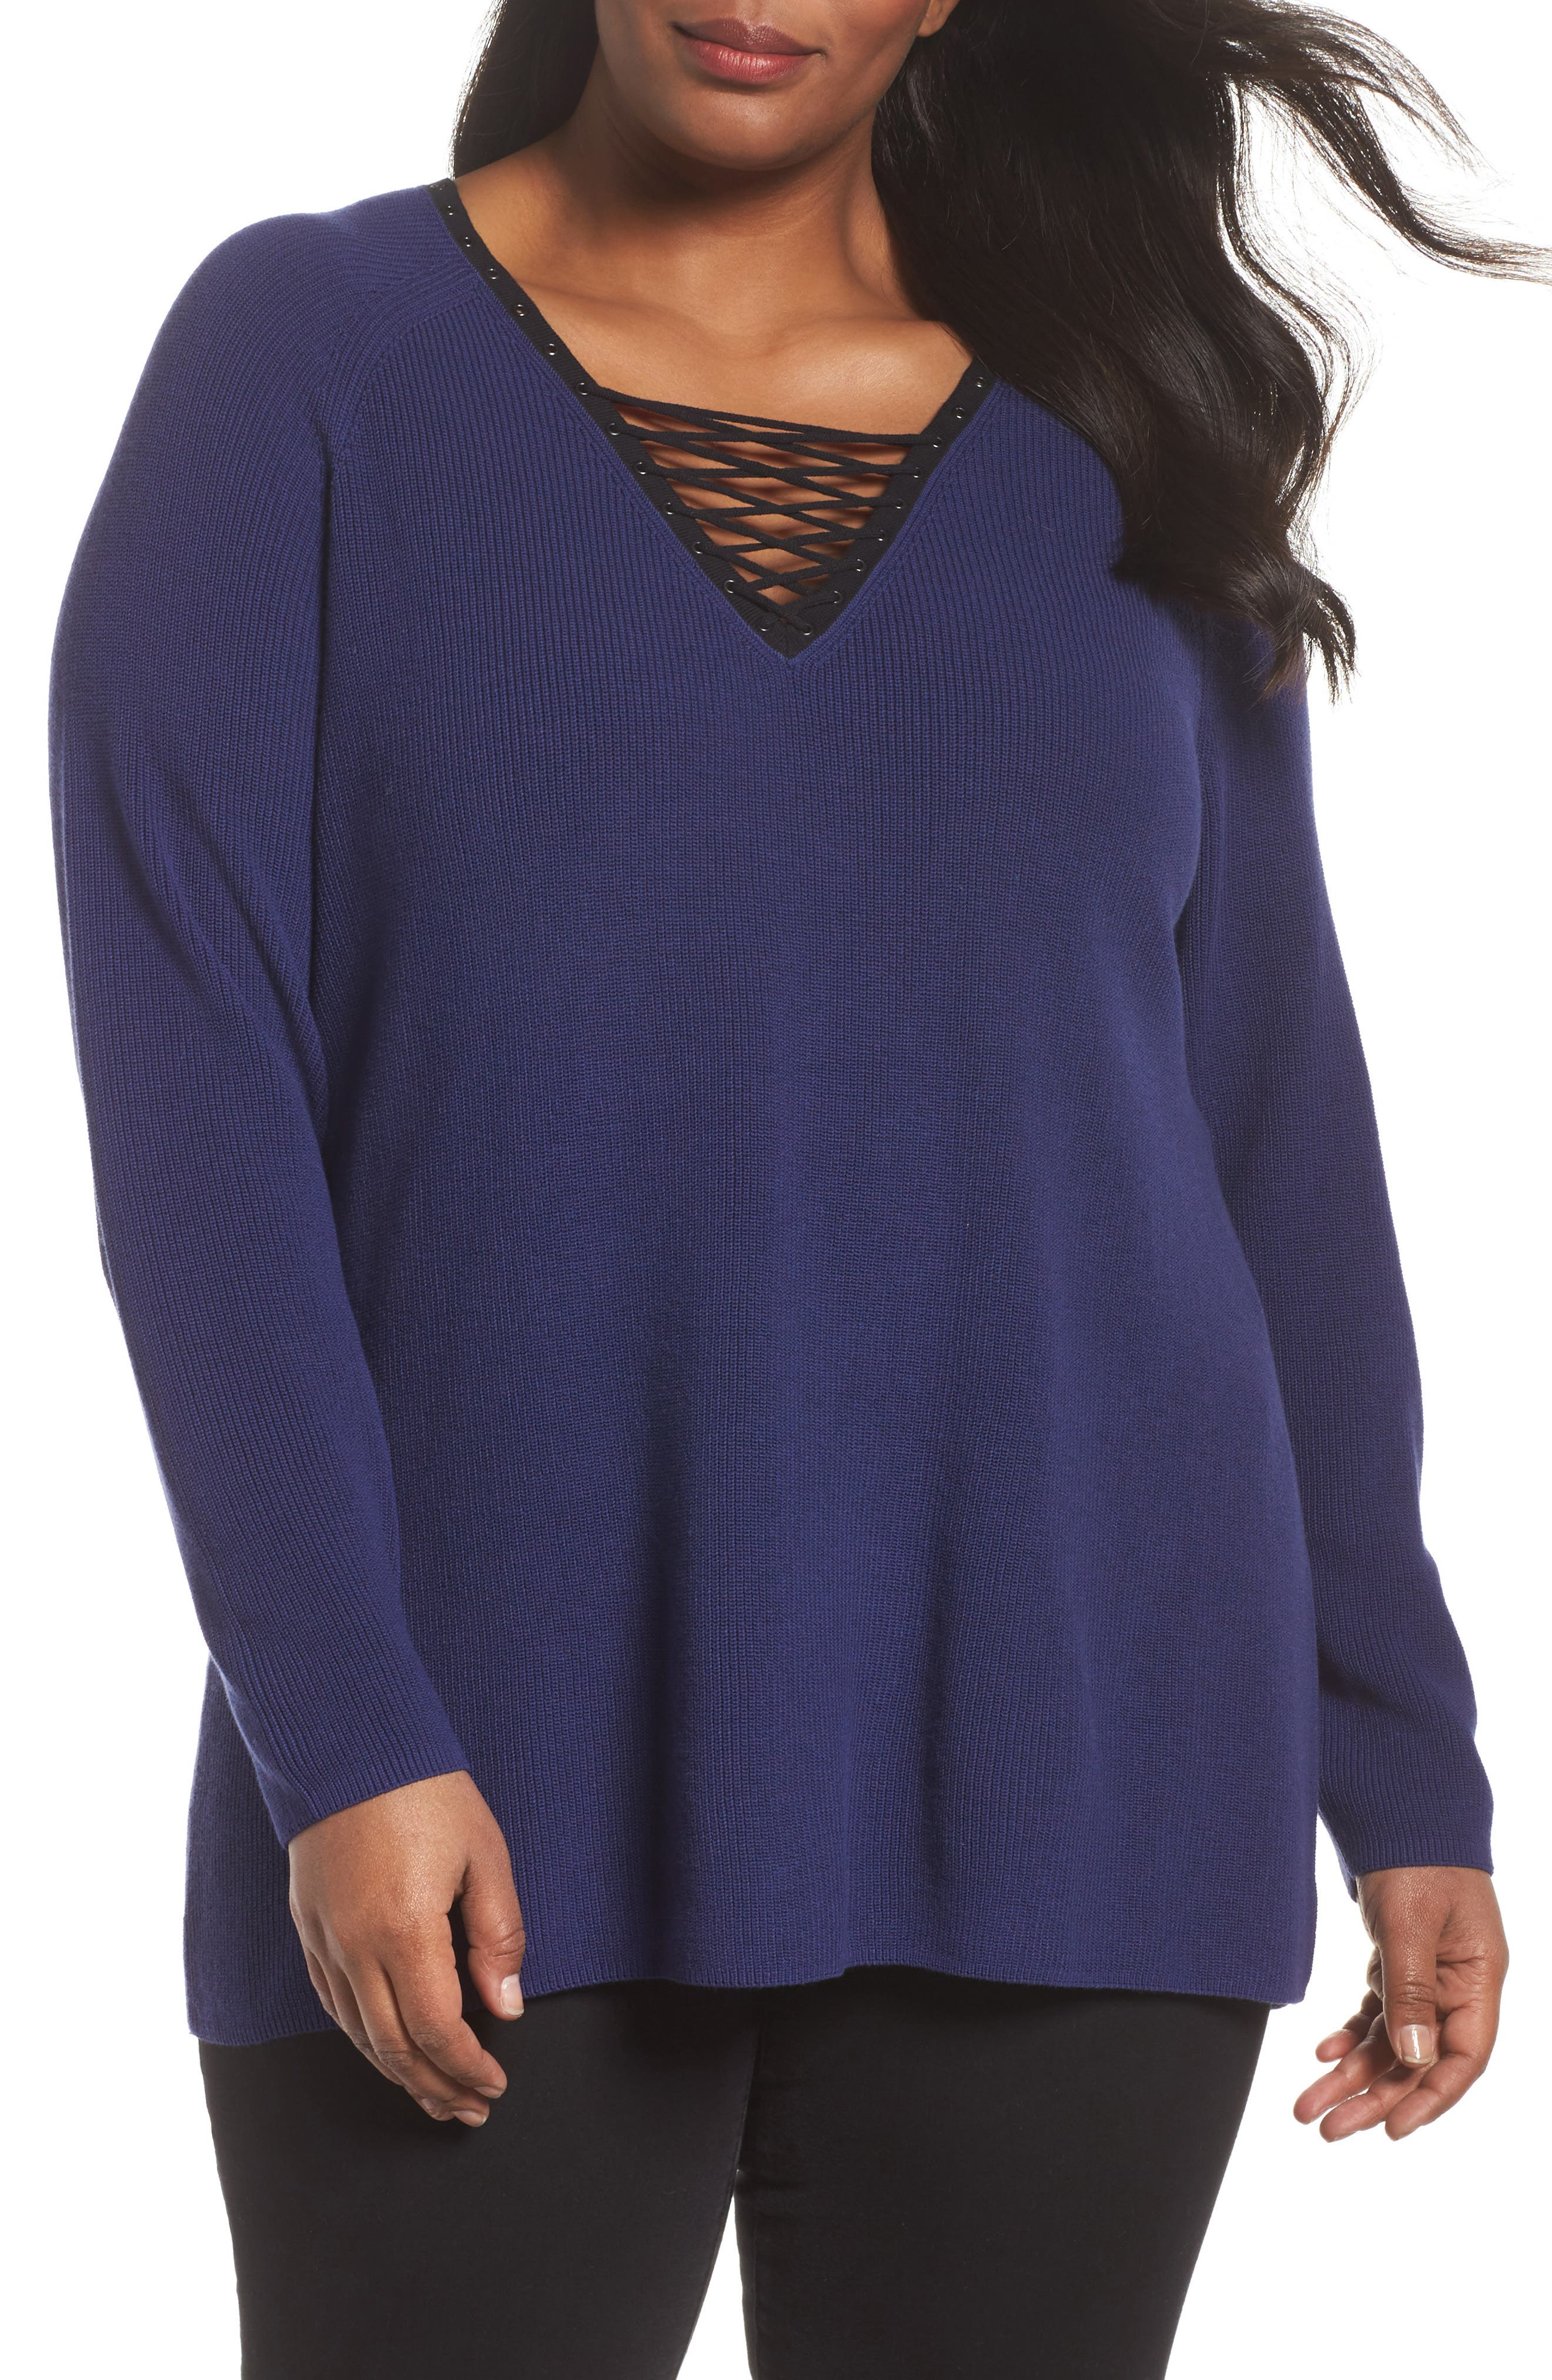 Main Image - NIC+ZOE A Little Edge Lace-Up V-Neck Sweater (Plus Size)